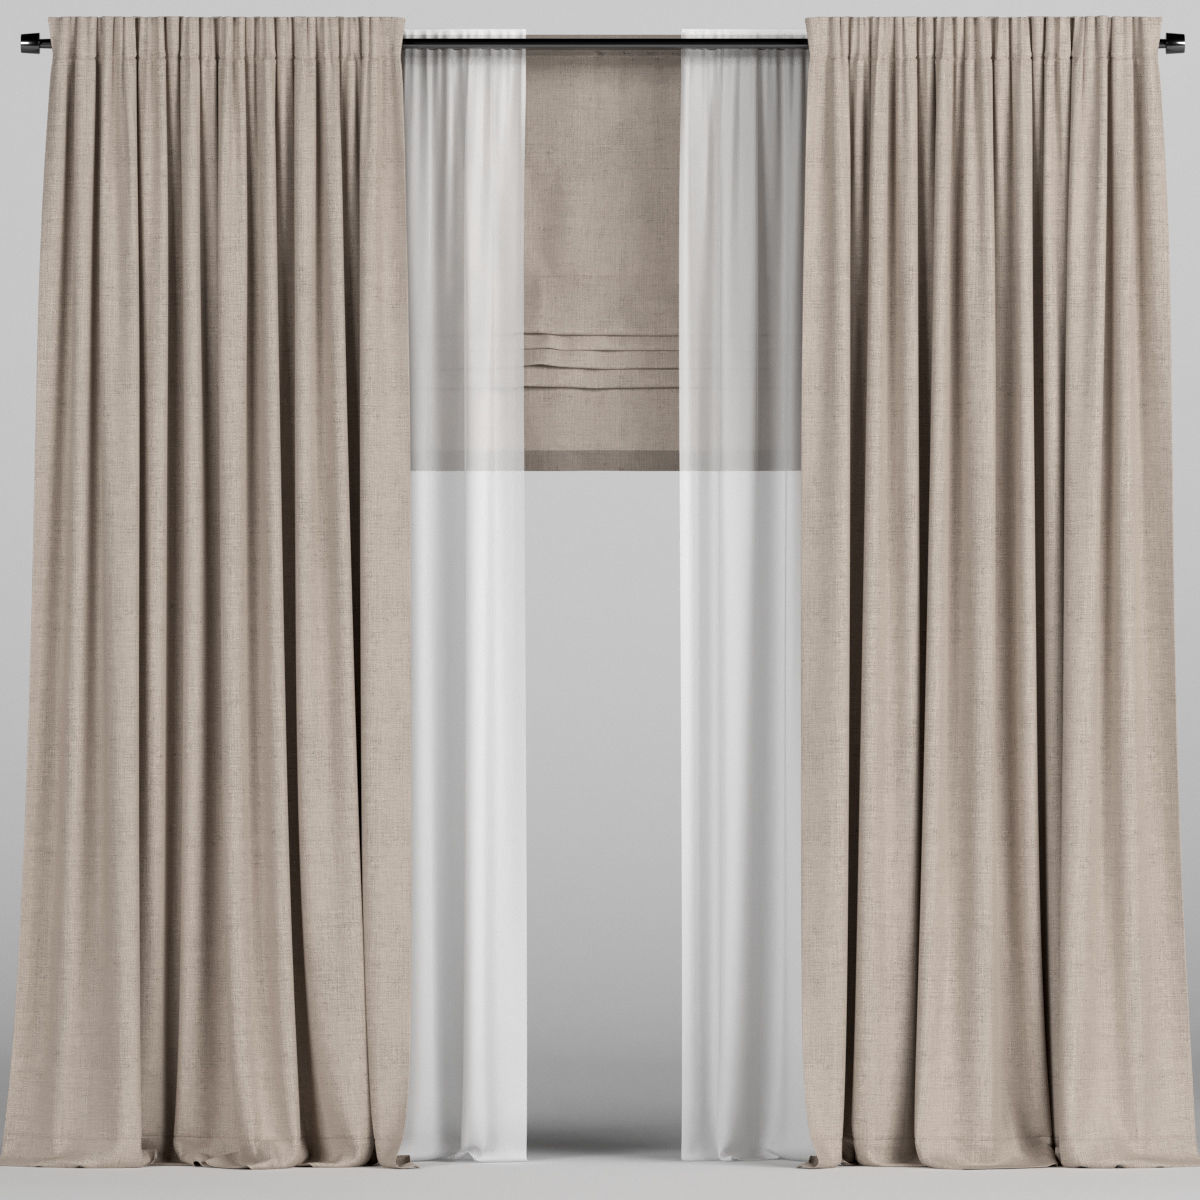 Brown Curtains With Tulle And Roman Blinds 3d Model